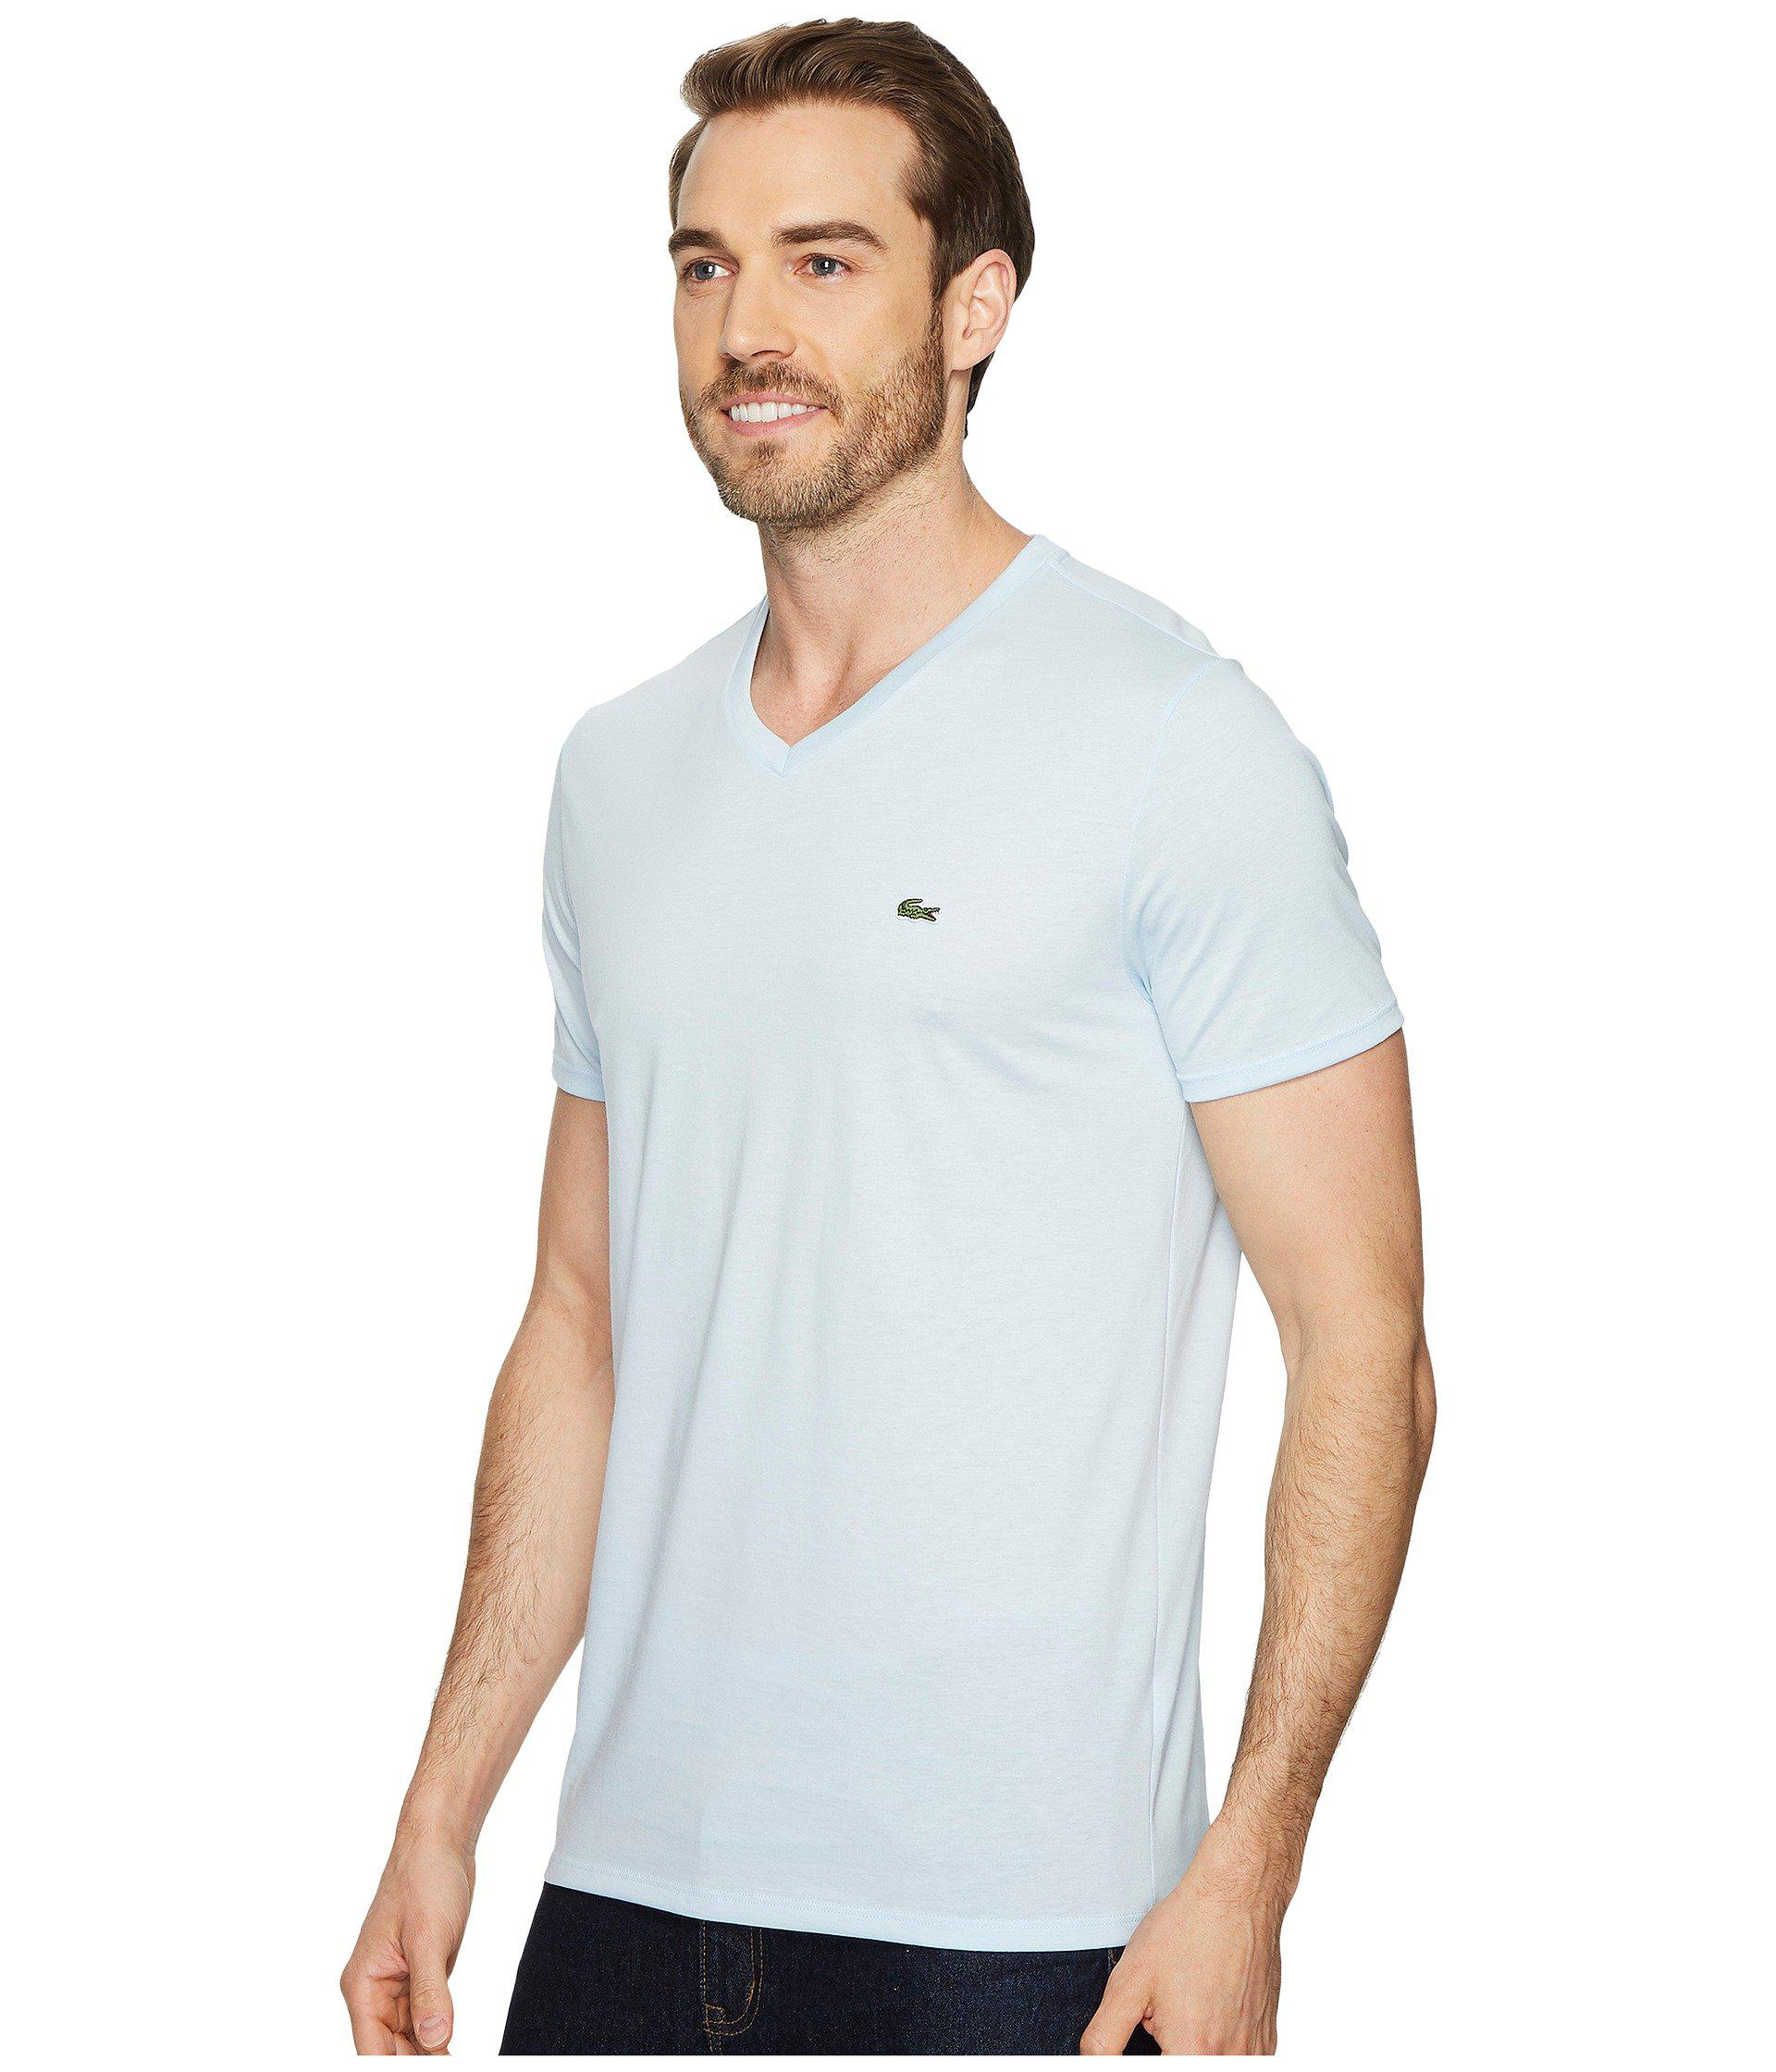 409f96e4bca3 Lyst - Lacoste Short Sleeve V-neck Pima Jersey Tee in Blue for Men - Save 3%